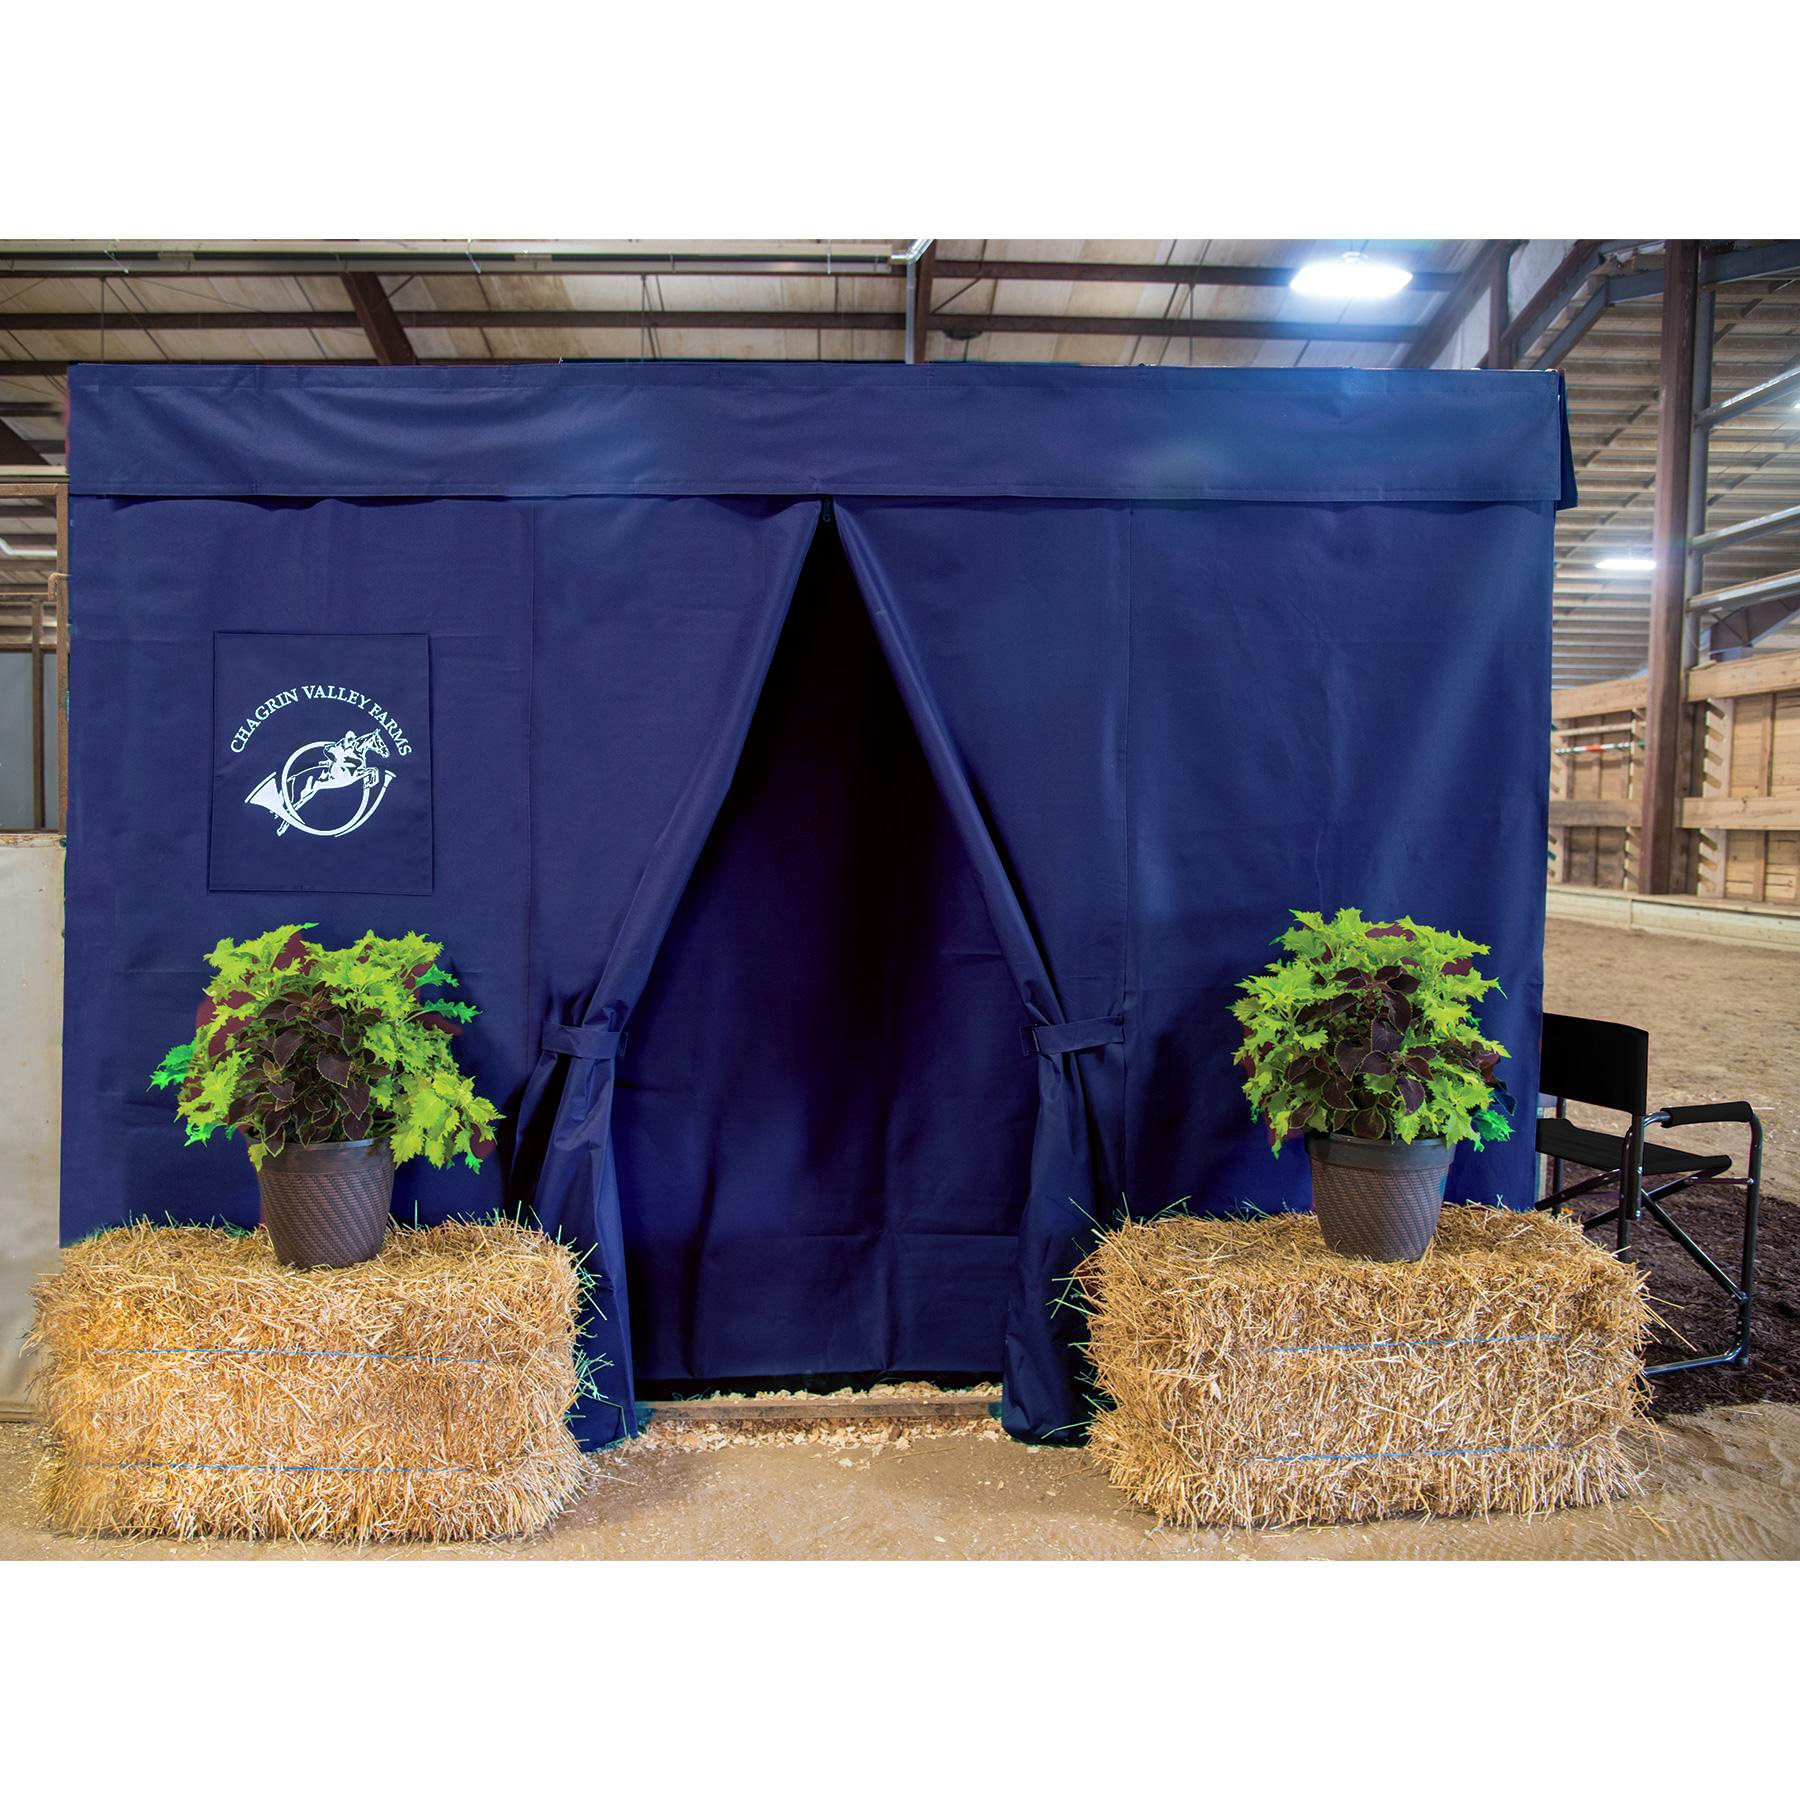 Dura-Tech Six Piece Horse Stall Front Drape Package, Heavy Duty Show Stall, Professional Appearance with Easy Set-Up and Flexible Entry Placement (Navy) by Dura-Tech